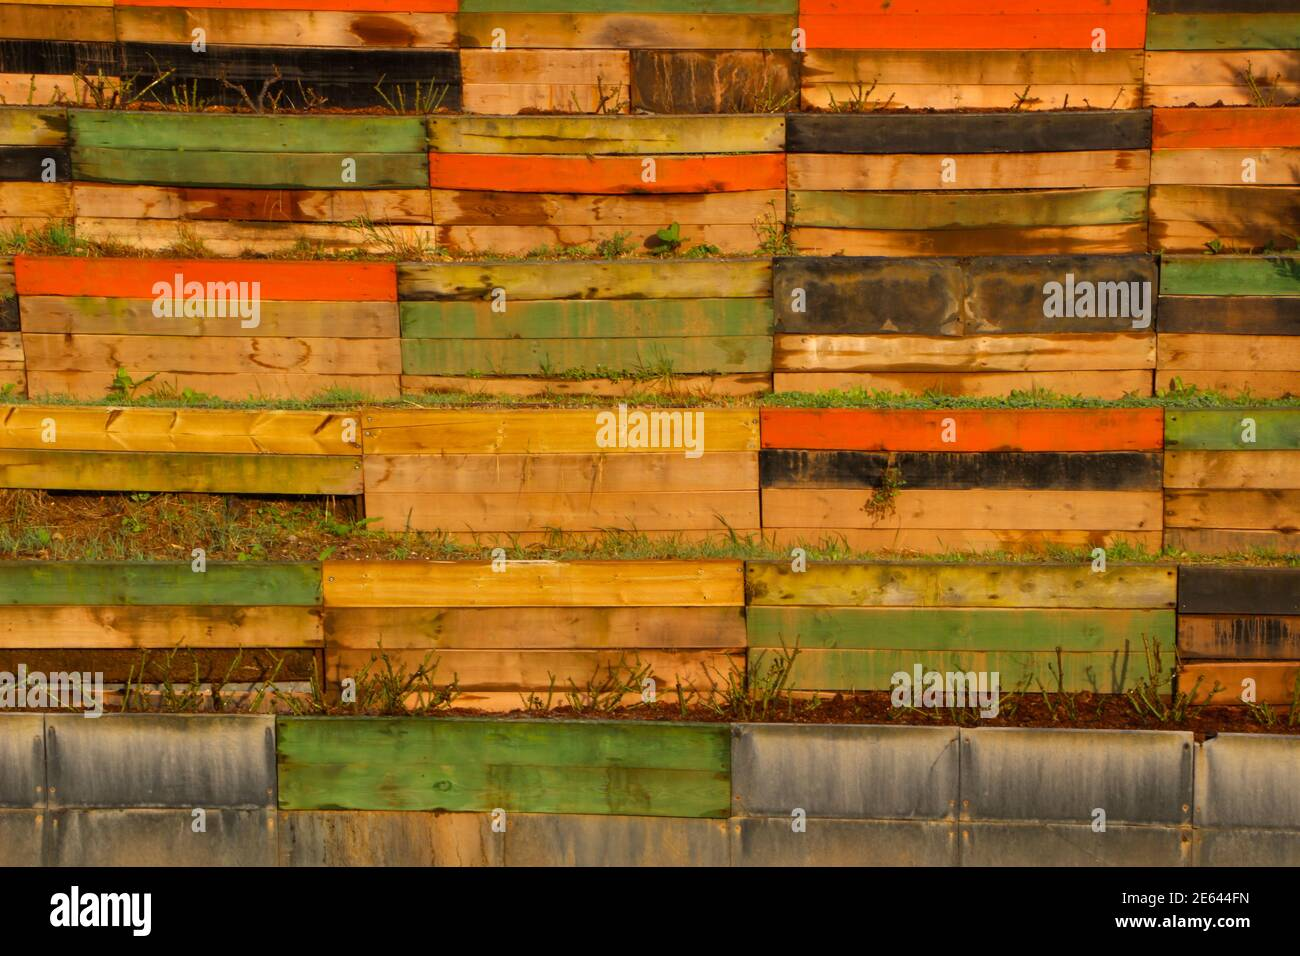 wall-of-brightly-painted-wooden-planks-used-to-support-planters-for-rose-bushes-pruned-in-winter-in-the-atlantic-las-llamas-public-park-winter-2021-2E644FN.jpg